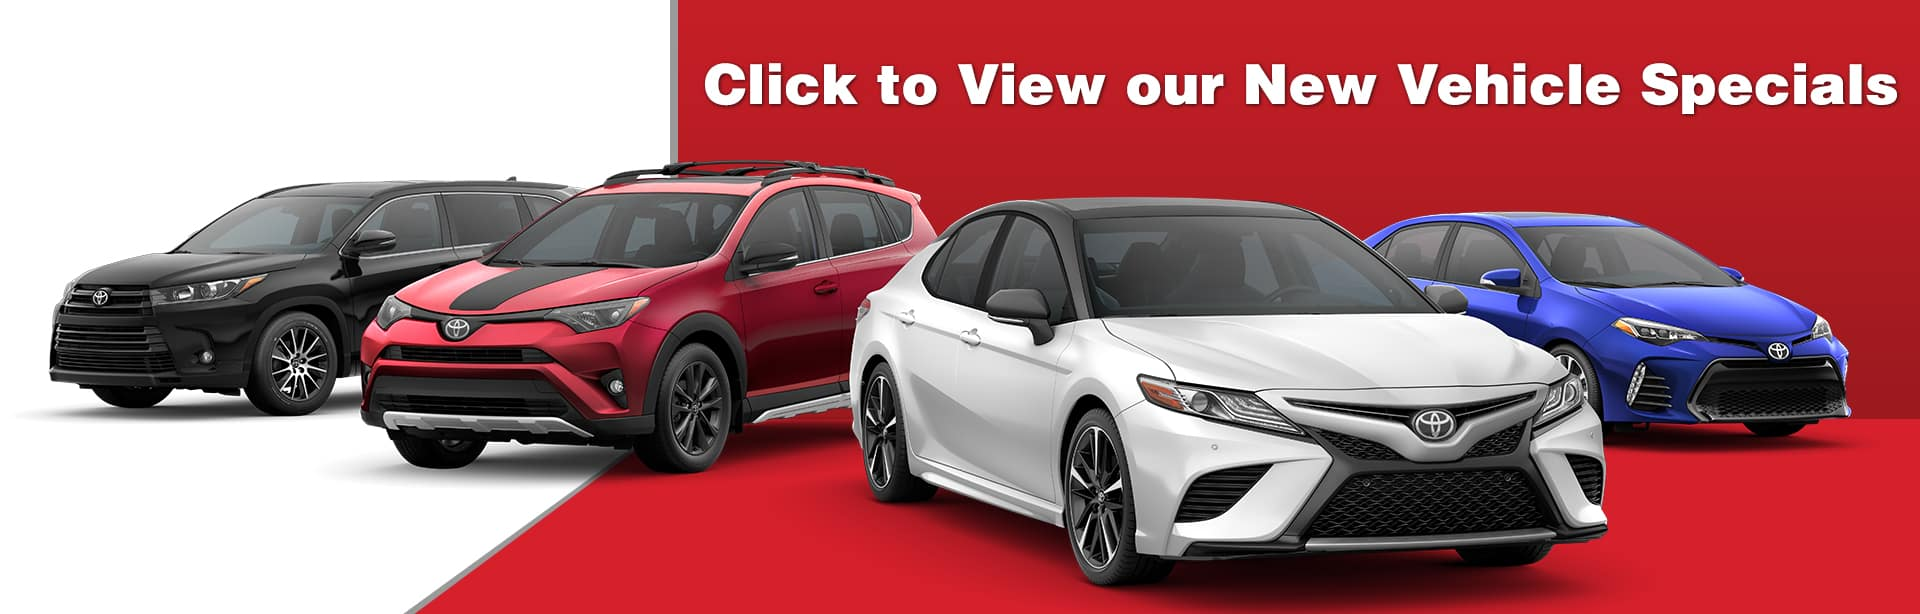 Stevens Creek Toyota Specials